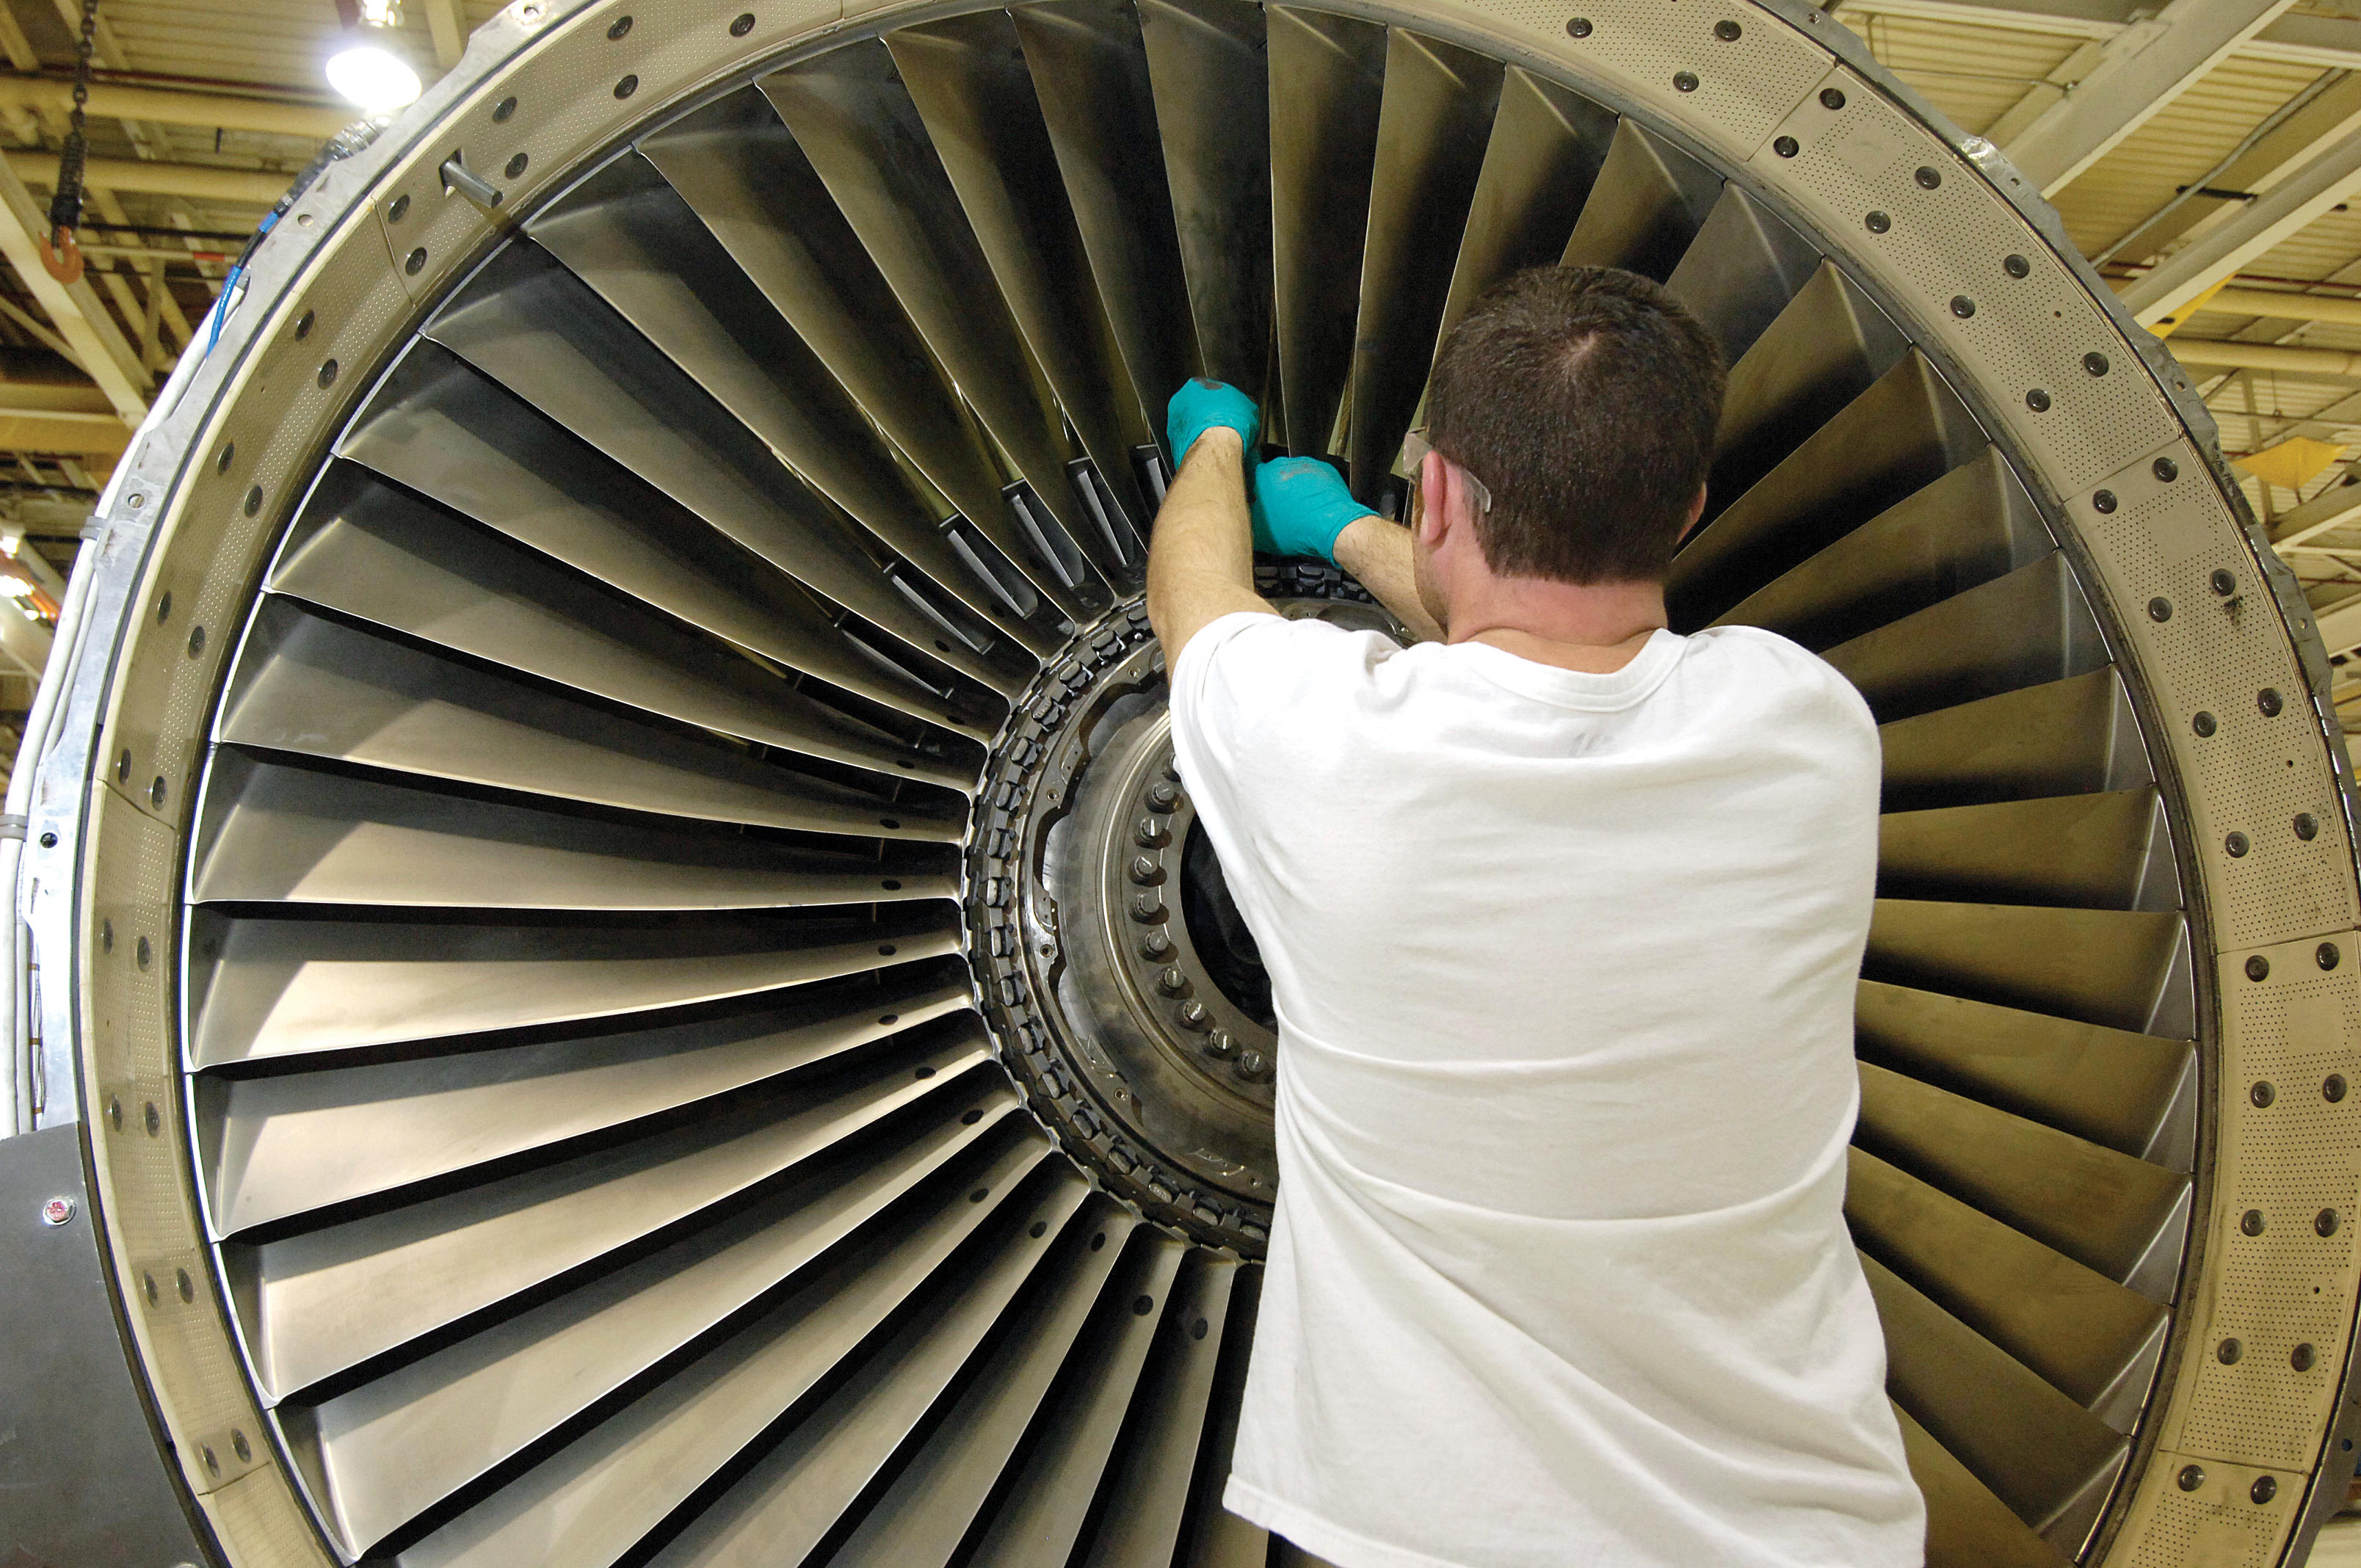 Jet Engine Fan Blades : New fan blade contract saves air force millions gt